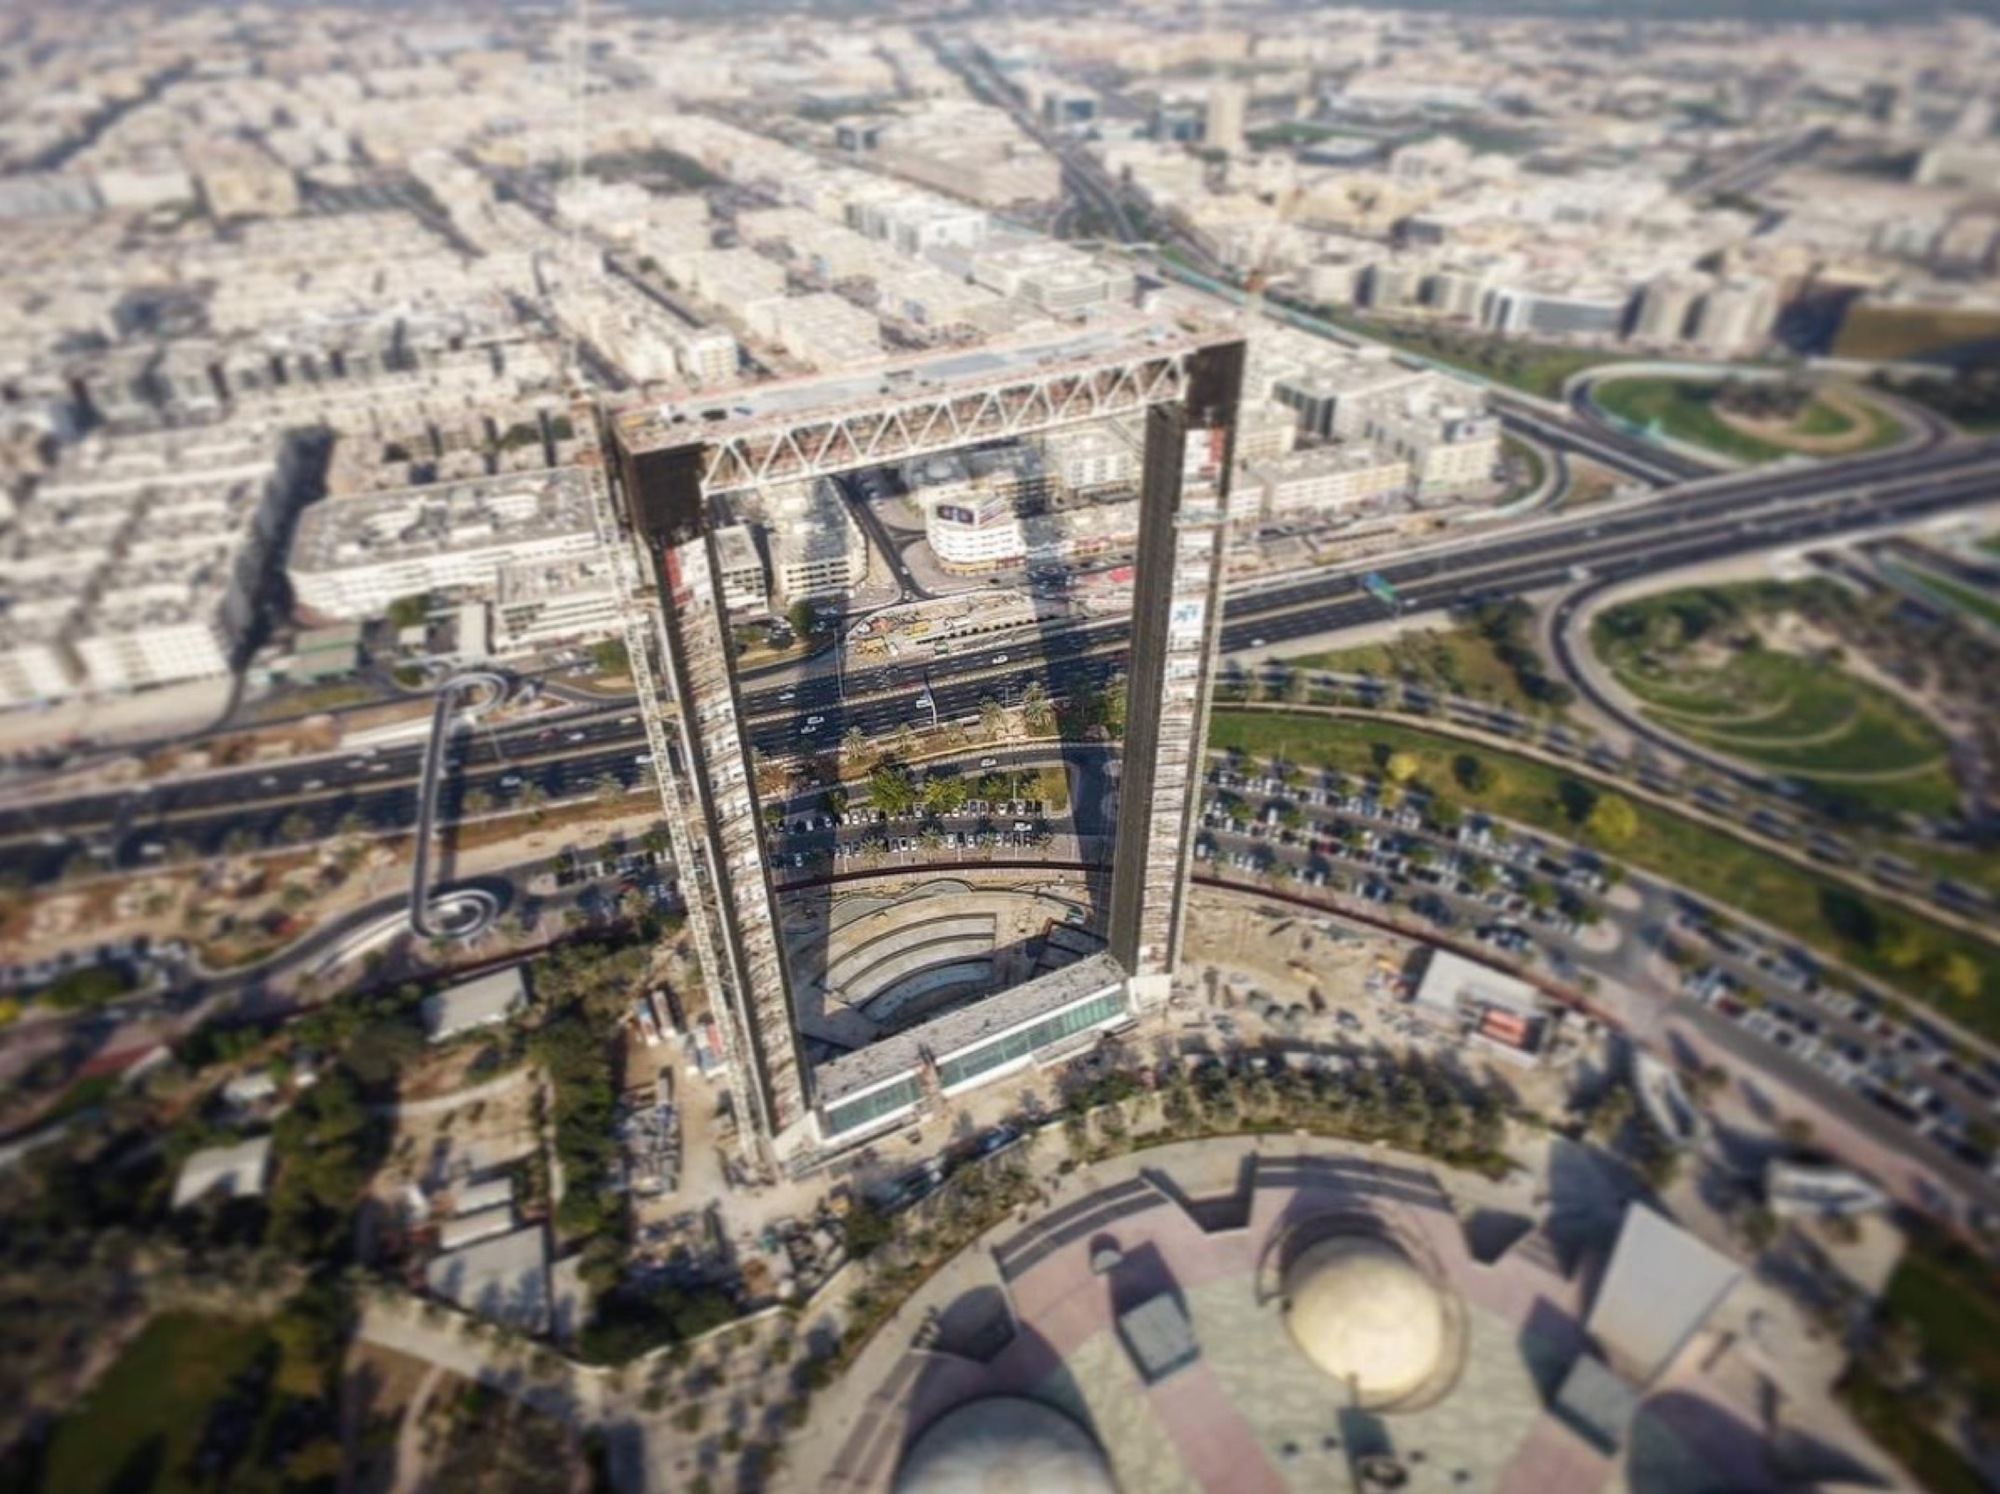 dubai frame approaches completion amid allegations of stolen